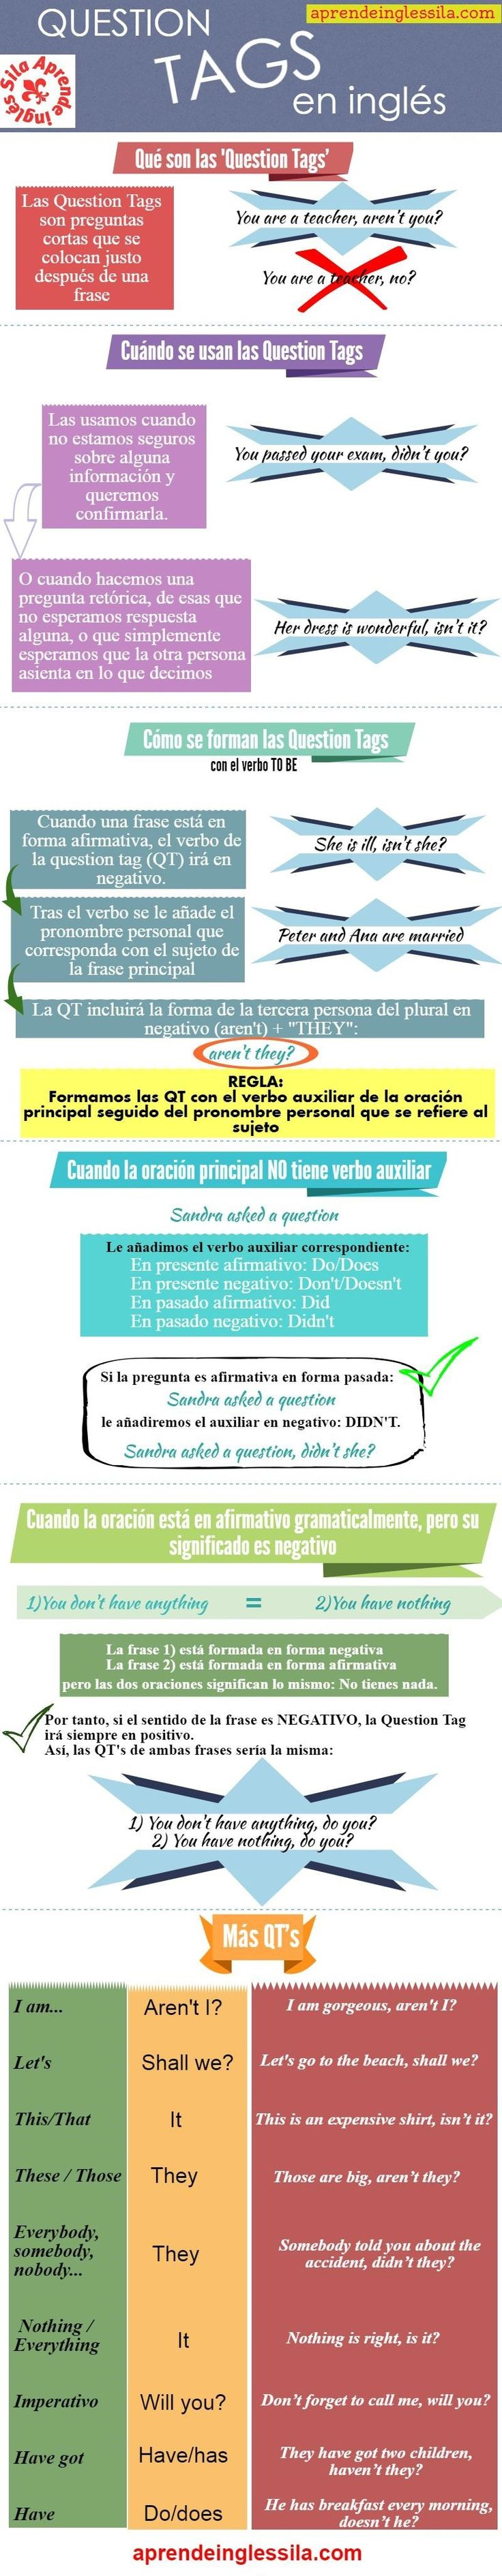 Infografía: QUESTION TAGS